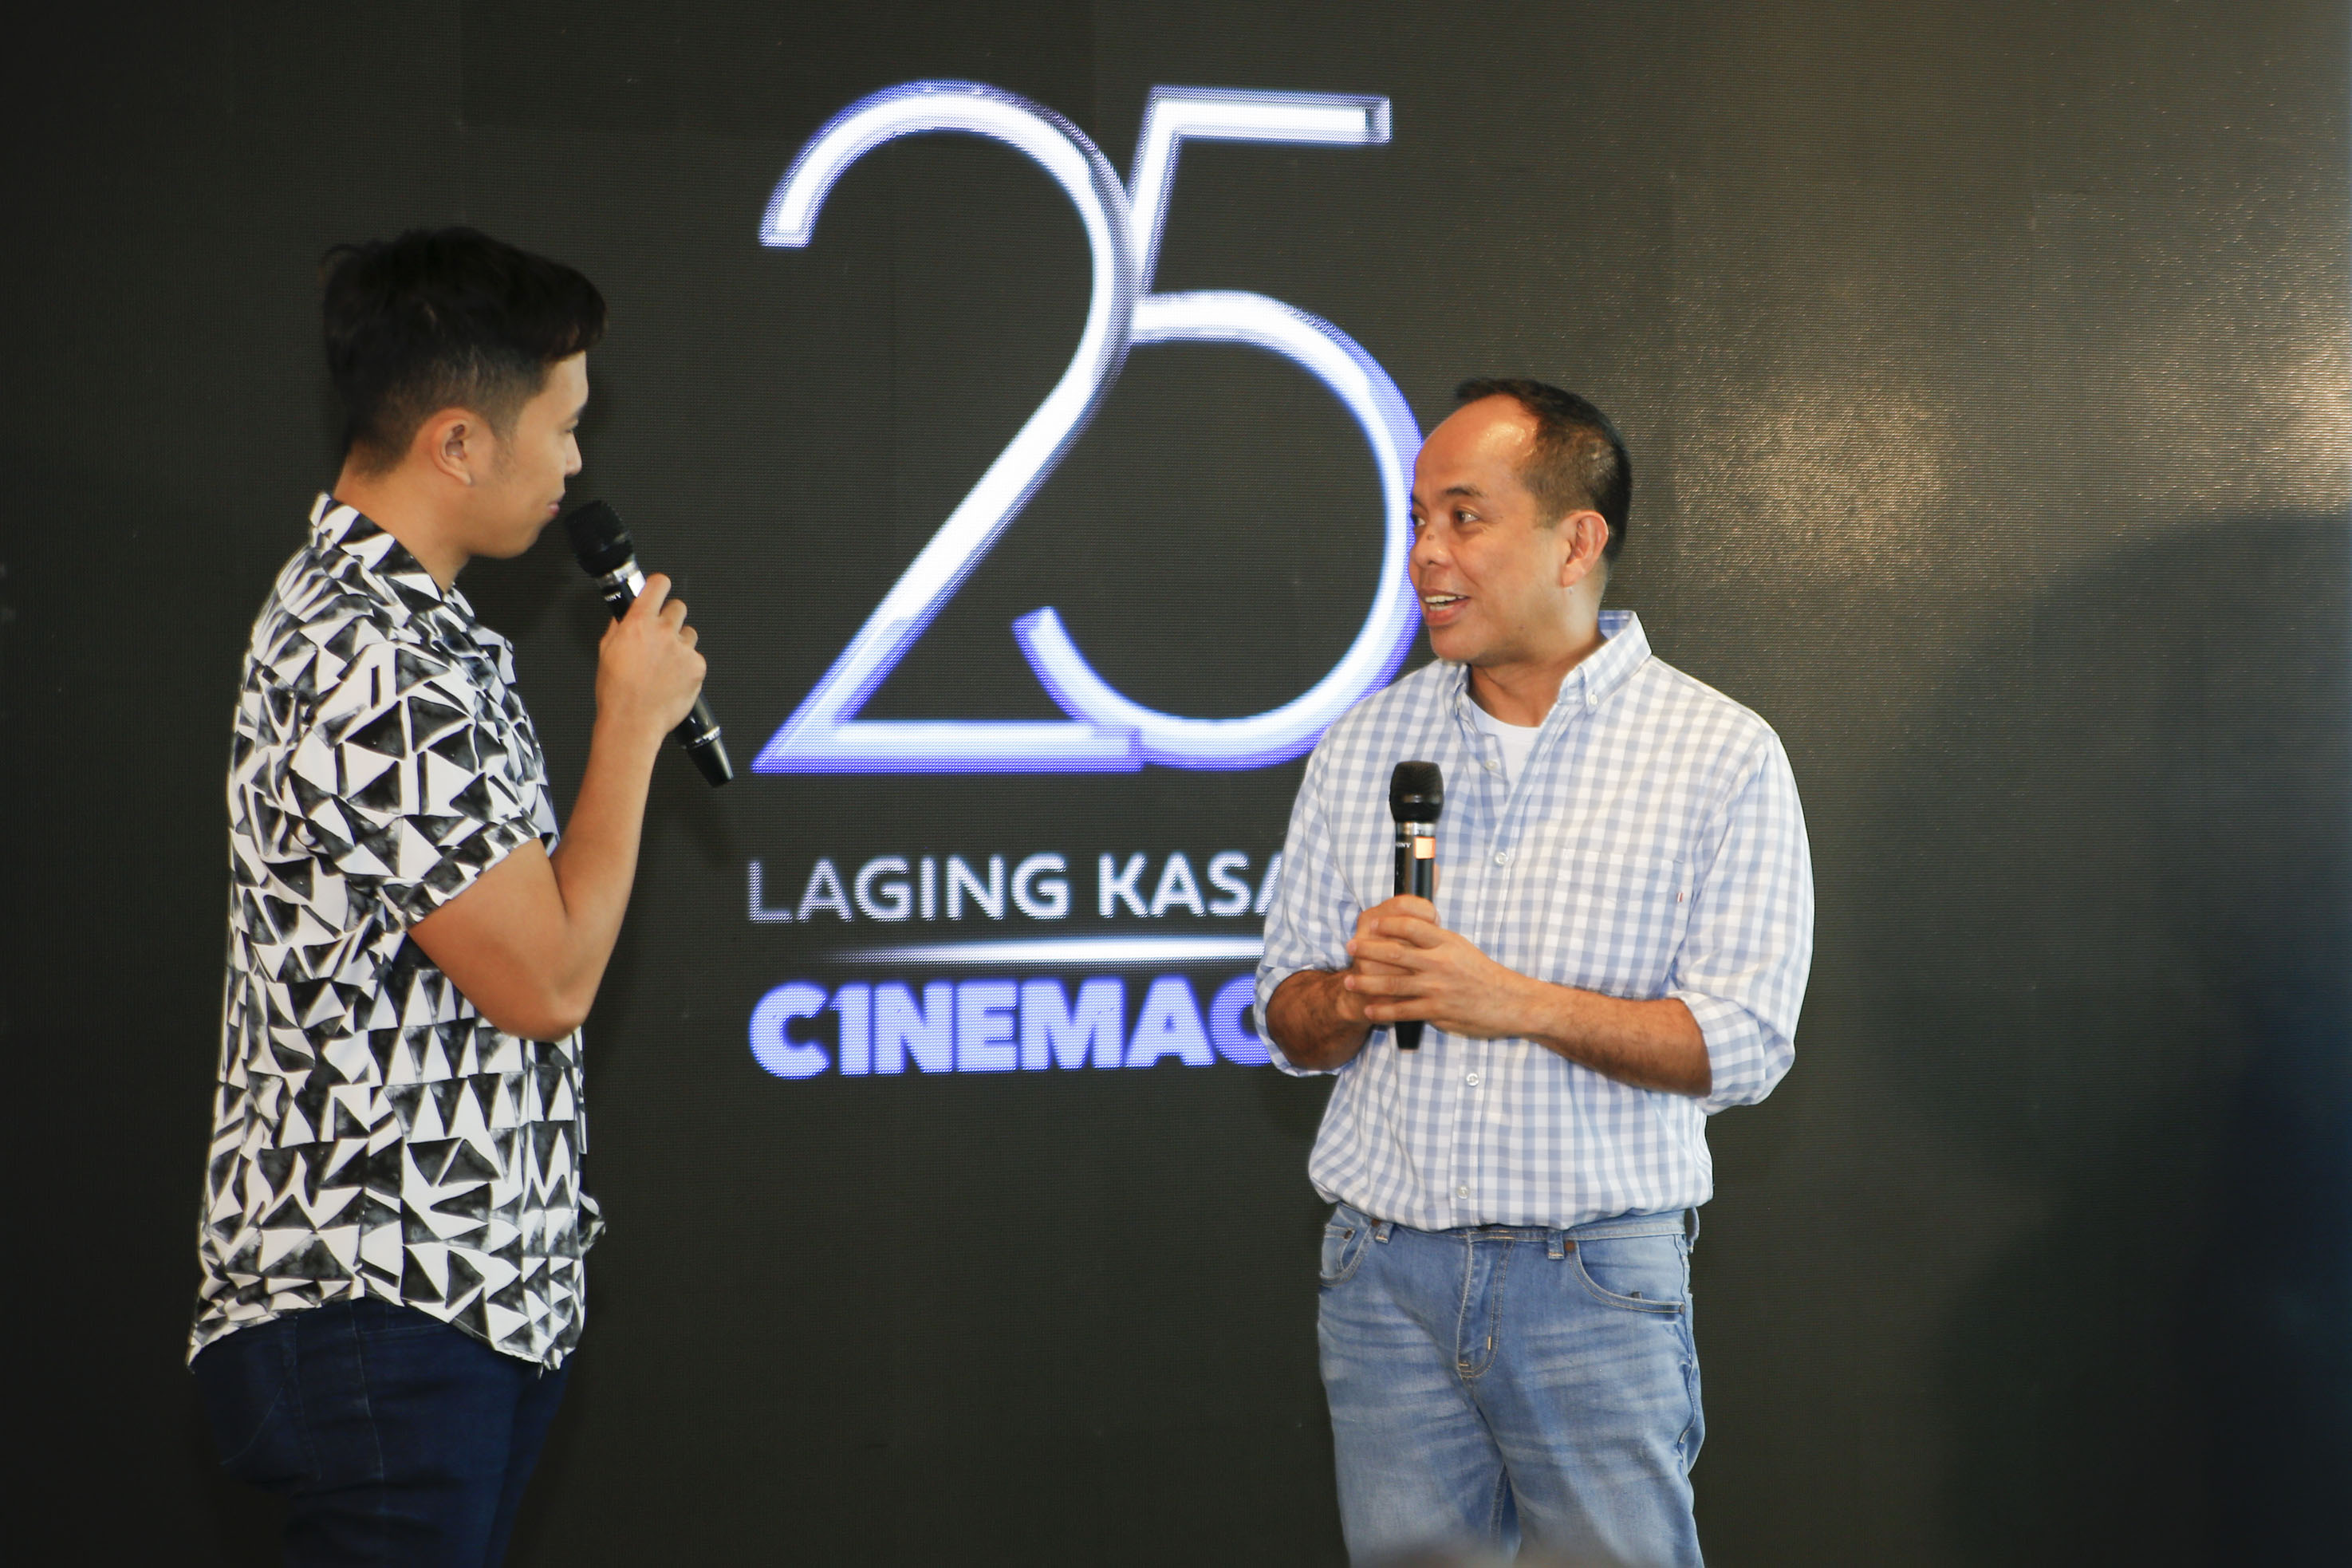 At 25, Cinema One is still Pinoys' 'laging kasama'